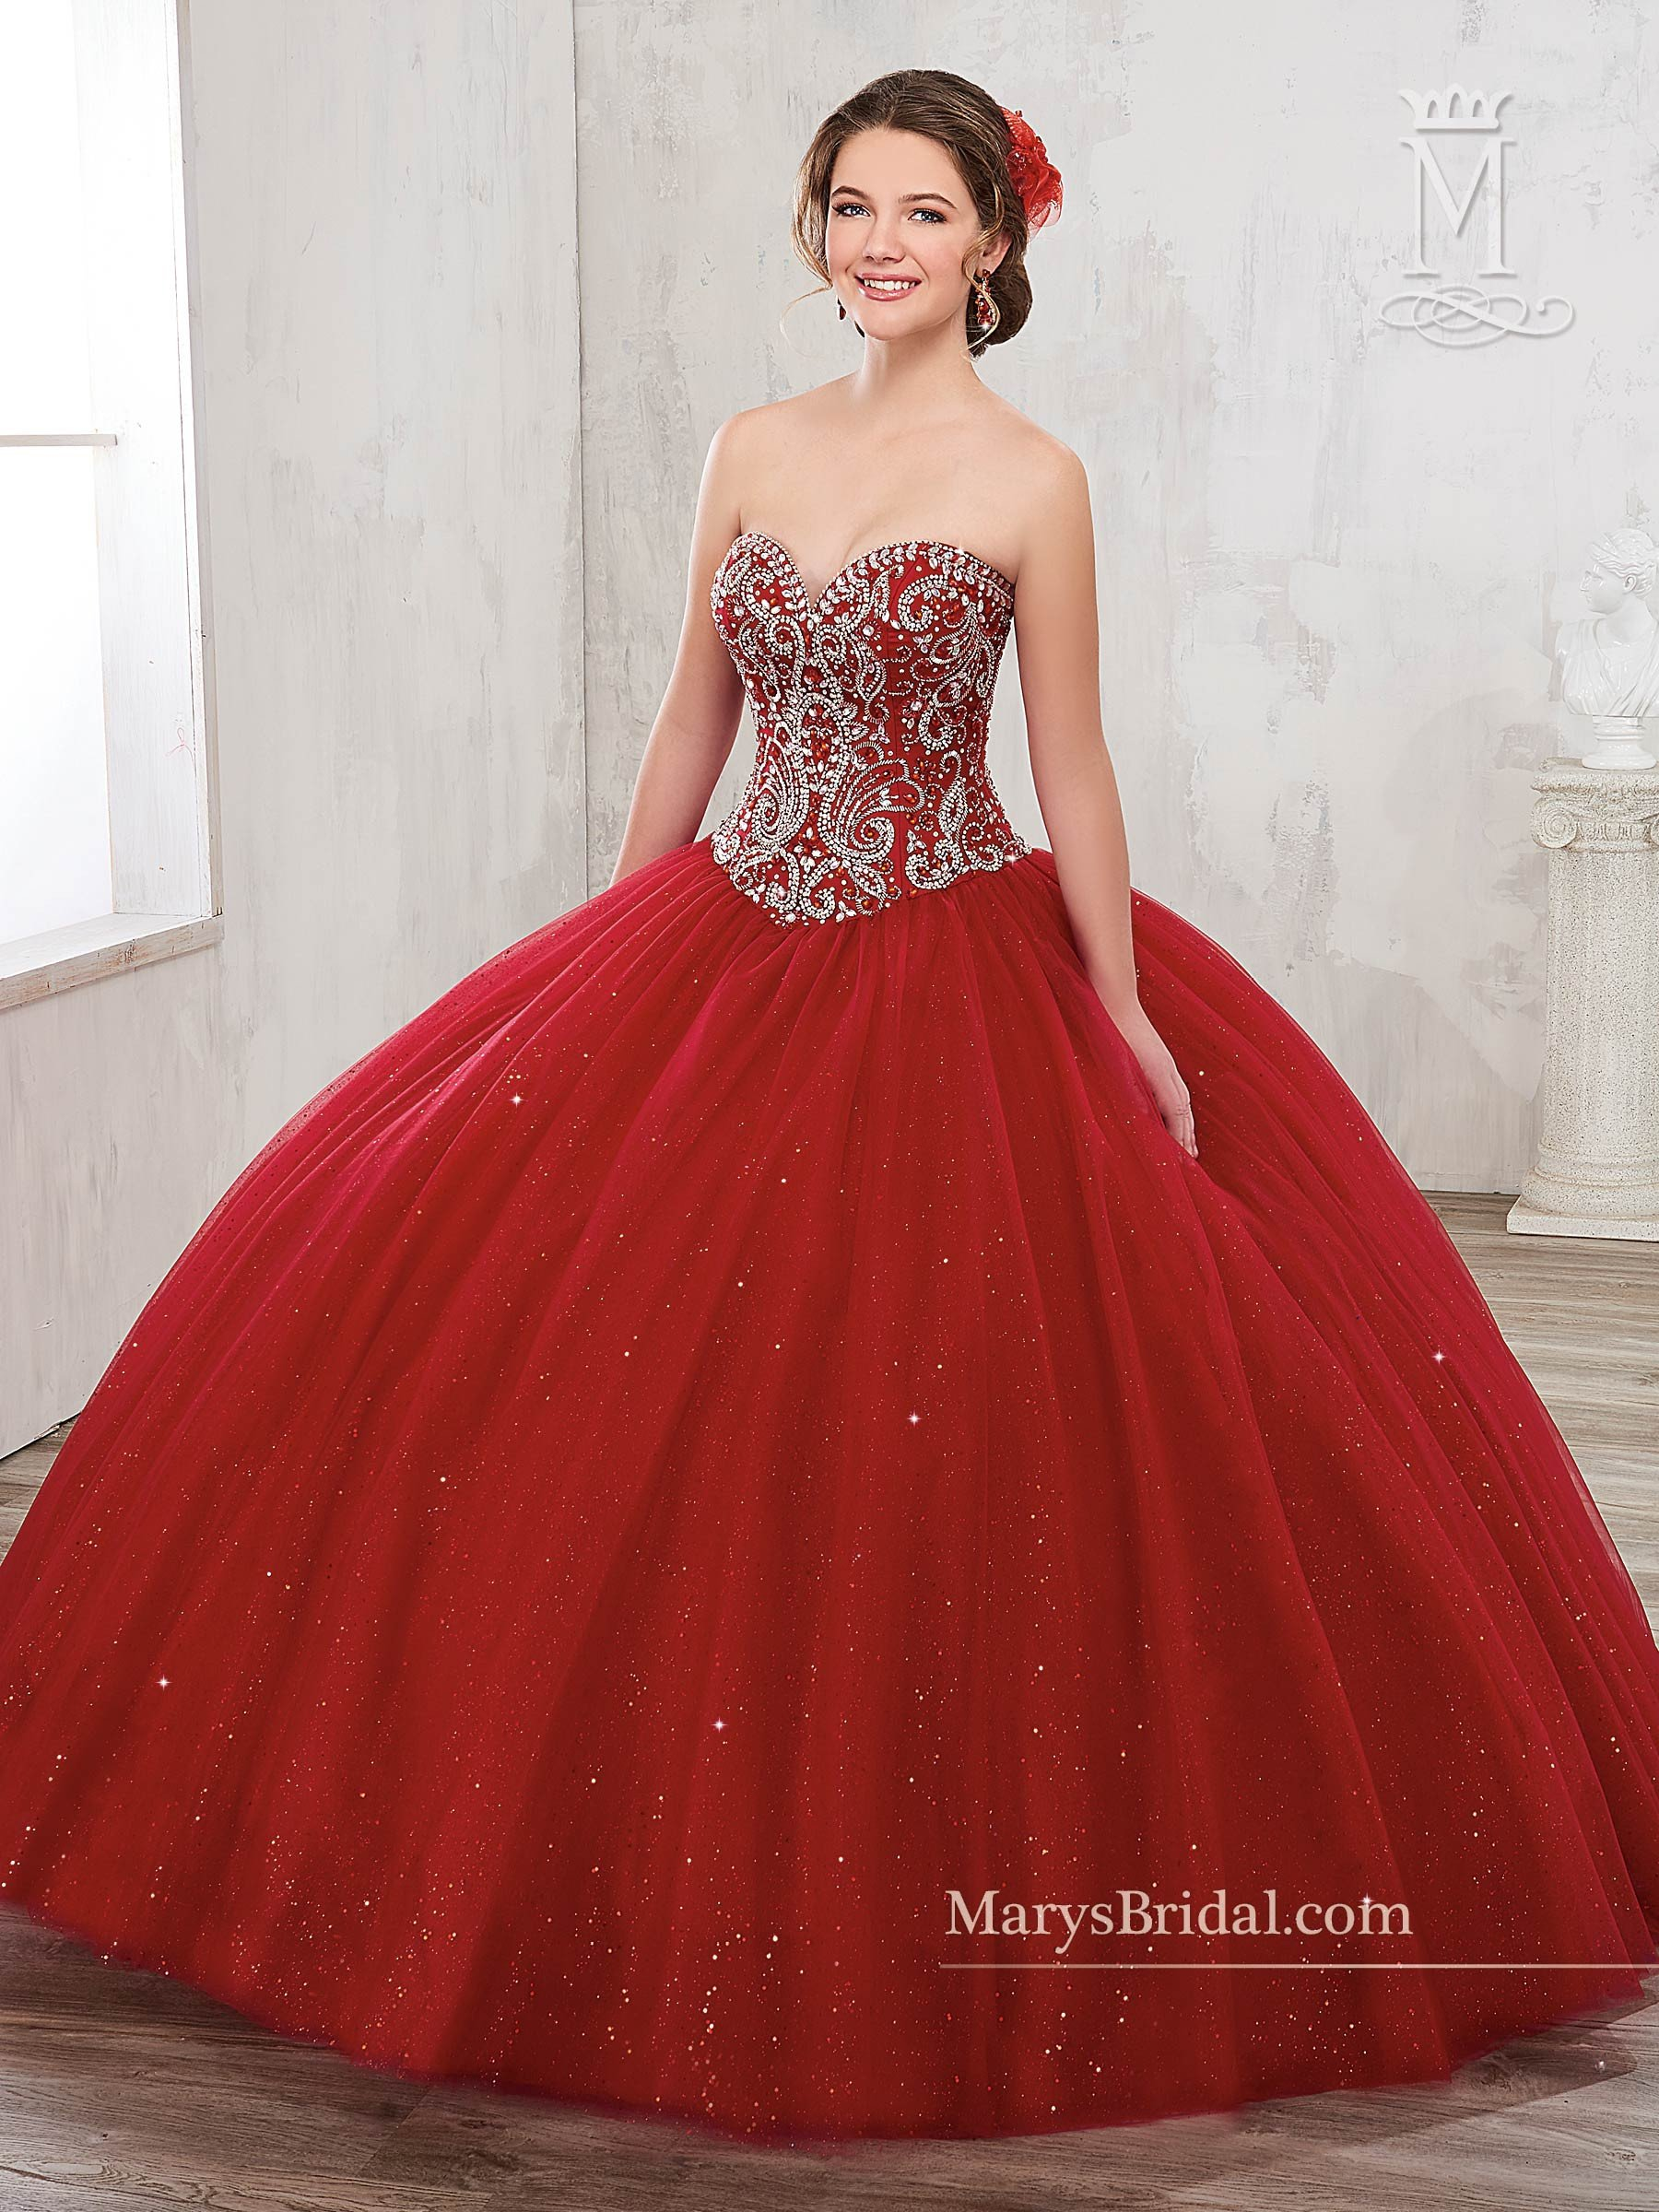 Beaded Strapless Quinceanera Dress By Mary S Bridal Beloving 4801 Pretty Quinceanera Dresses Quincenera Dresses Quince Dresses [ 2400 x 1800 Pixel ]